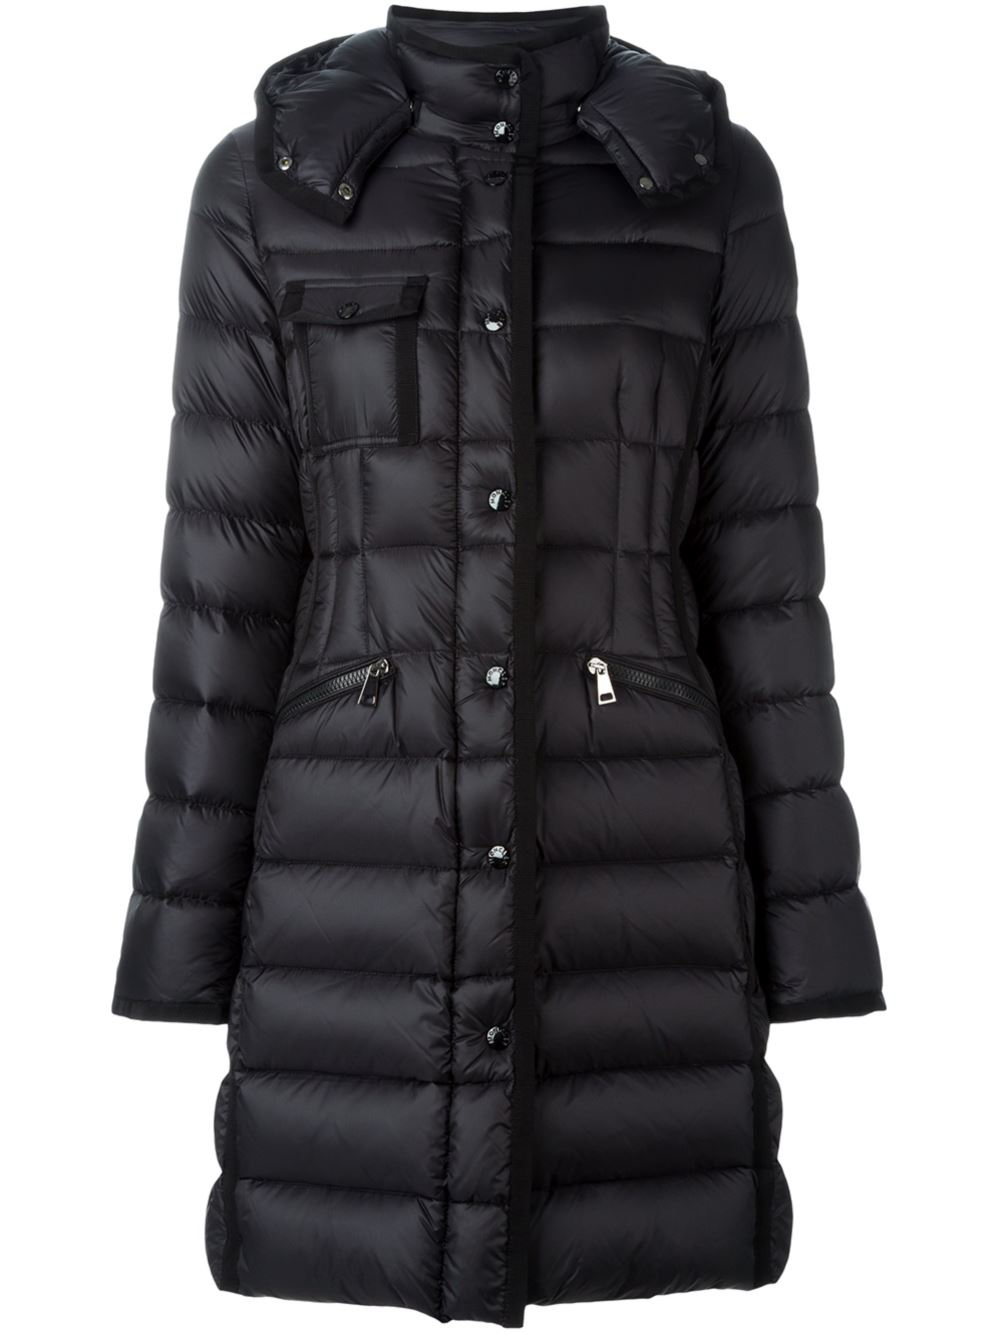 Padded Coats. Clothing. Women. Womens Coats & Jackets. Padded Coats. Womens Padded Jacket Zip Up Outwear Long Sleeve Coat Collarless Tops Overcoat Winter Warm Plus Size. Product Image. Price Adidas Womens Slim Padded Coat Black L. Product - Adidas Womens Padded Bomber Jacket Olive Green. Product Image. Price $